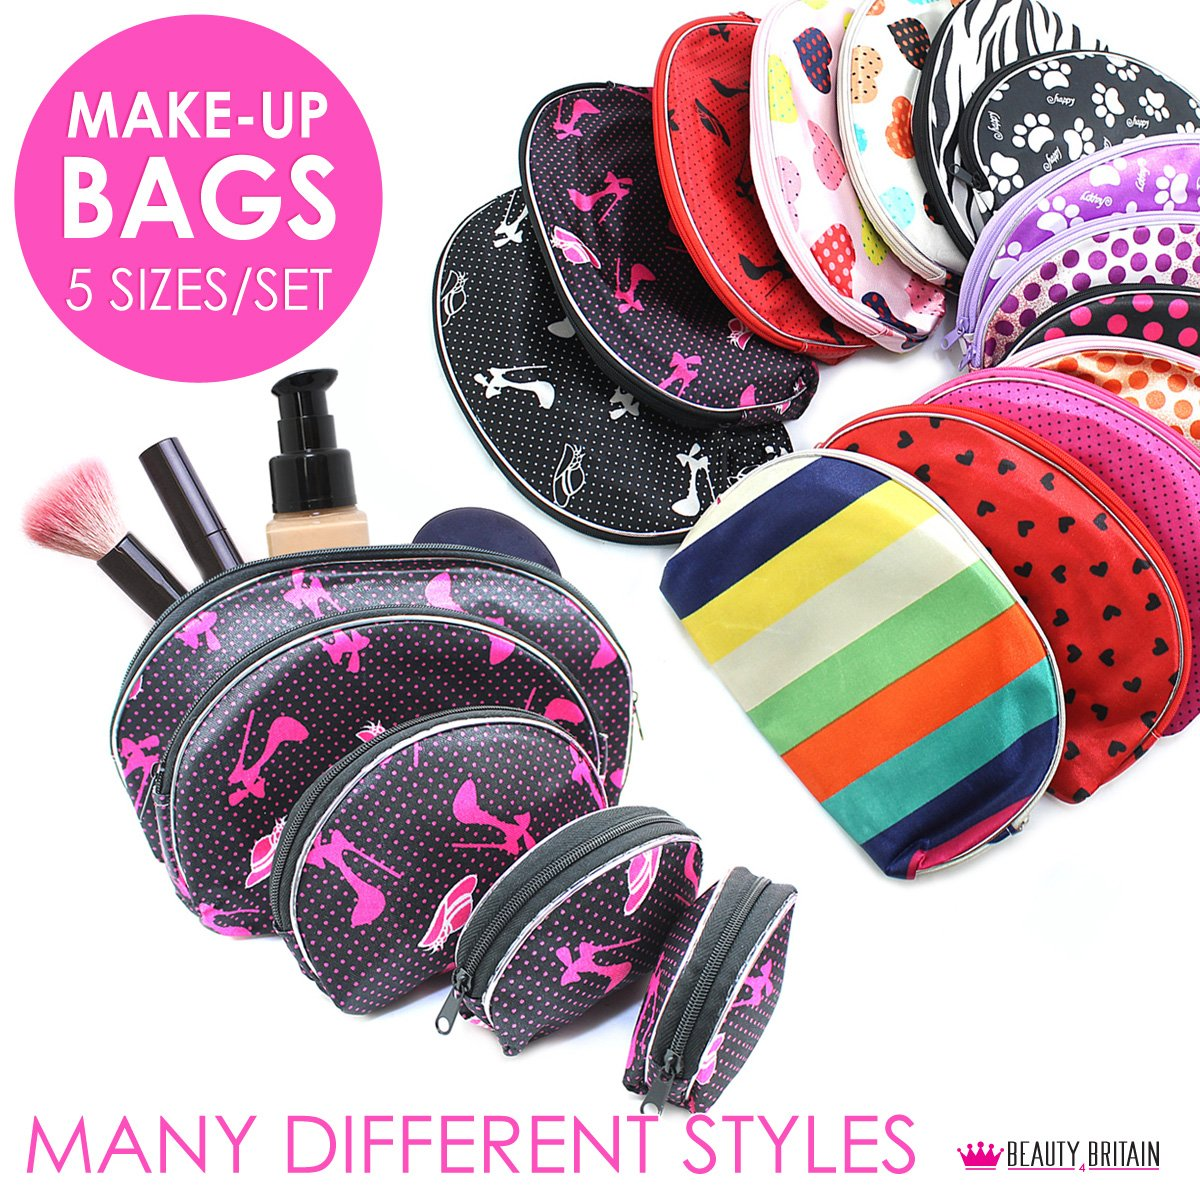 100 х MAKE-UP BAGS 20 SETS X 5 BAGS DIFFERENT STYLES COSMETIC BAGS WHOLESALE UK Fashion